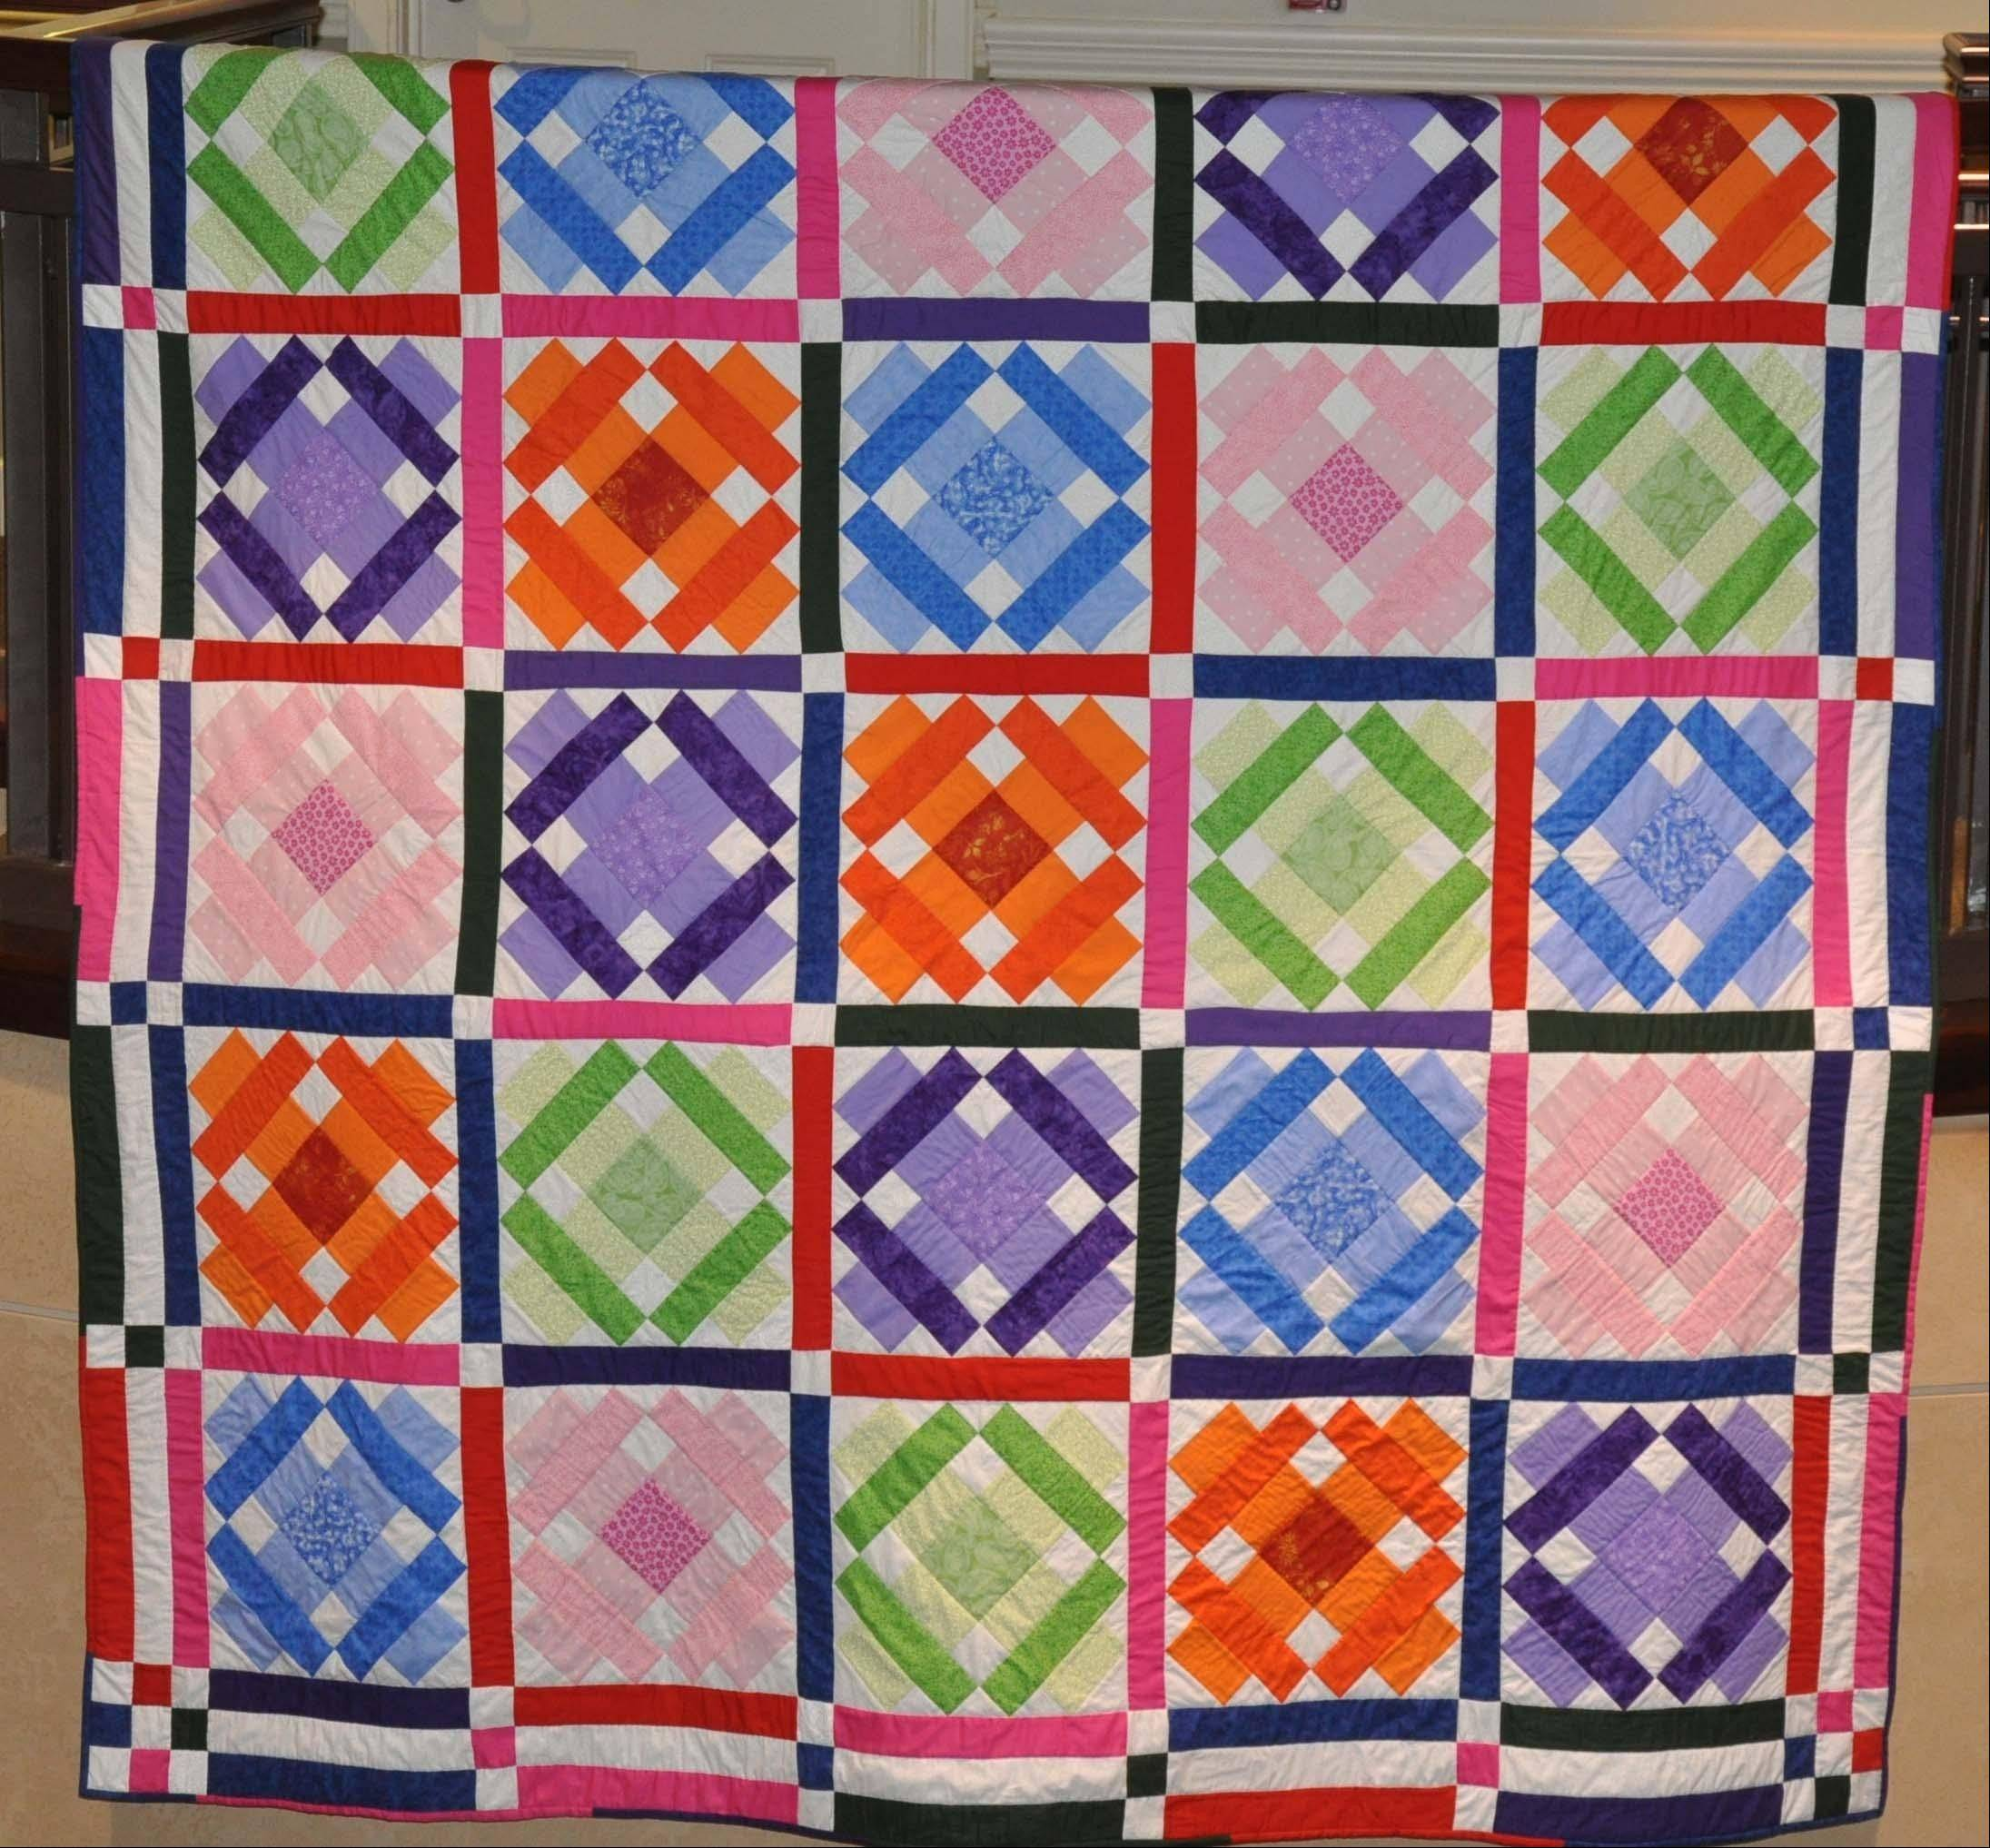 The featured 2012 Holmstad Bazaar quilt, made by resident quilters.